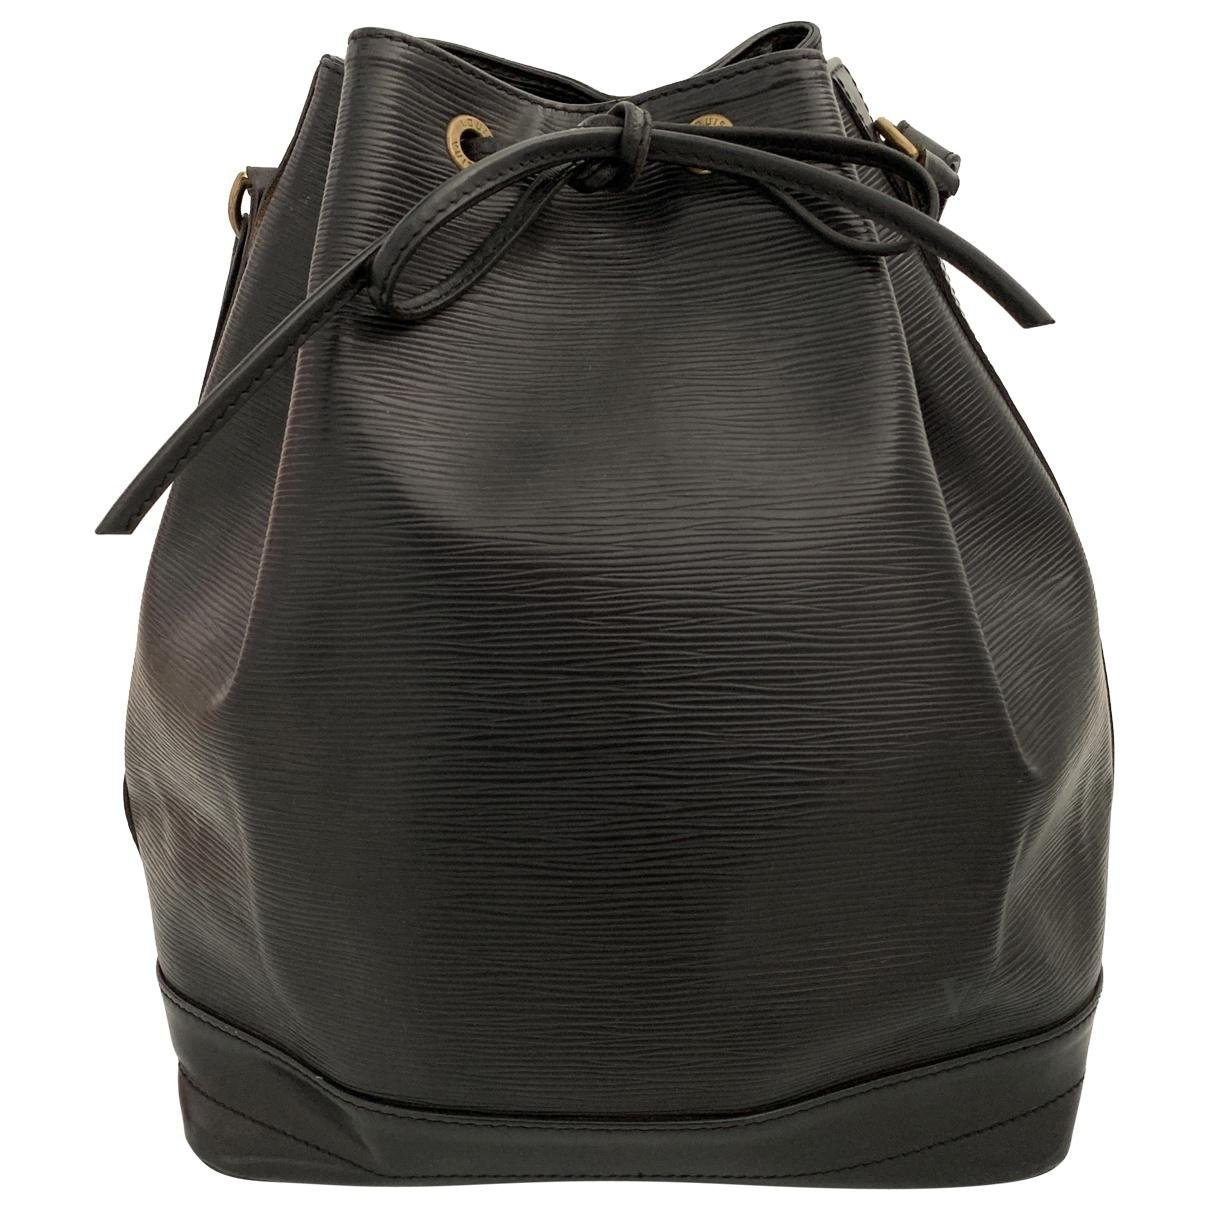 a184f36145b8a Lyst - Louis Vuitton Pre-owned Vintage Noé Black Leather Handbags in ...